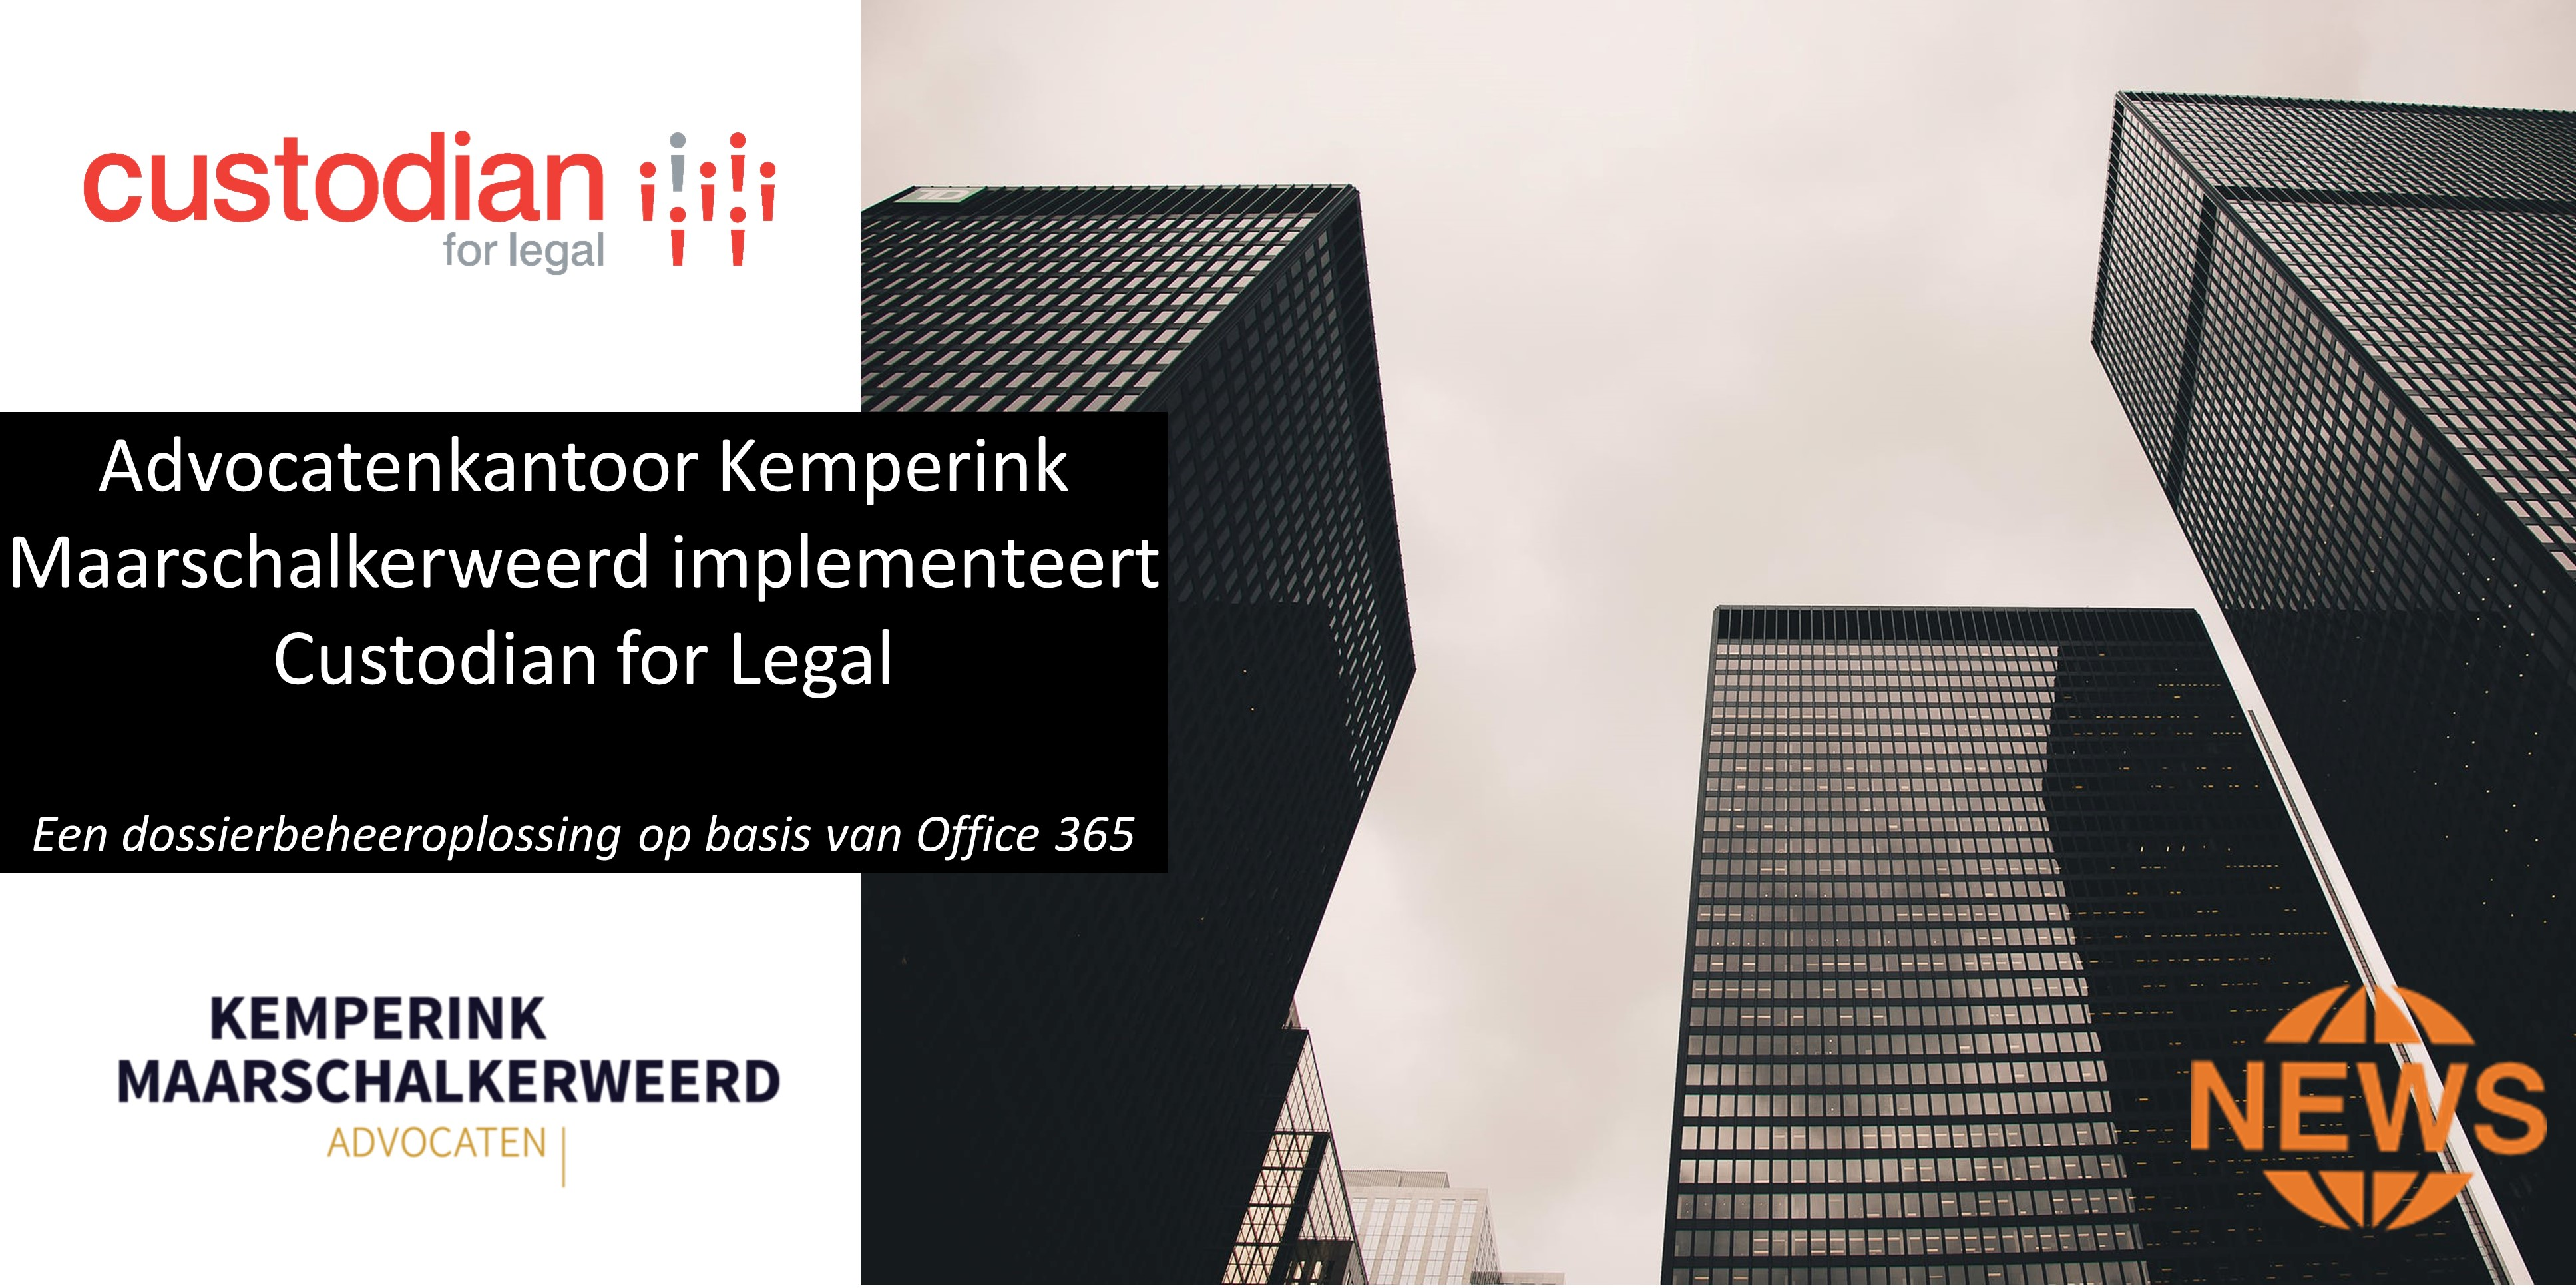 Advocatenkantoor-Kemperink-Maarschalkerweerd-kiest-voor-Custodian-for-Legal